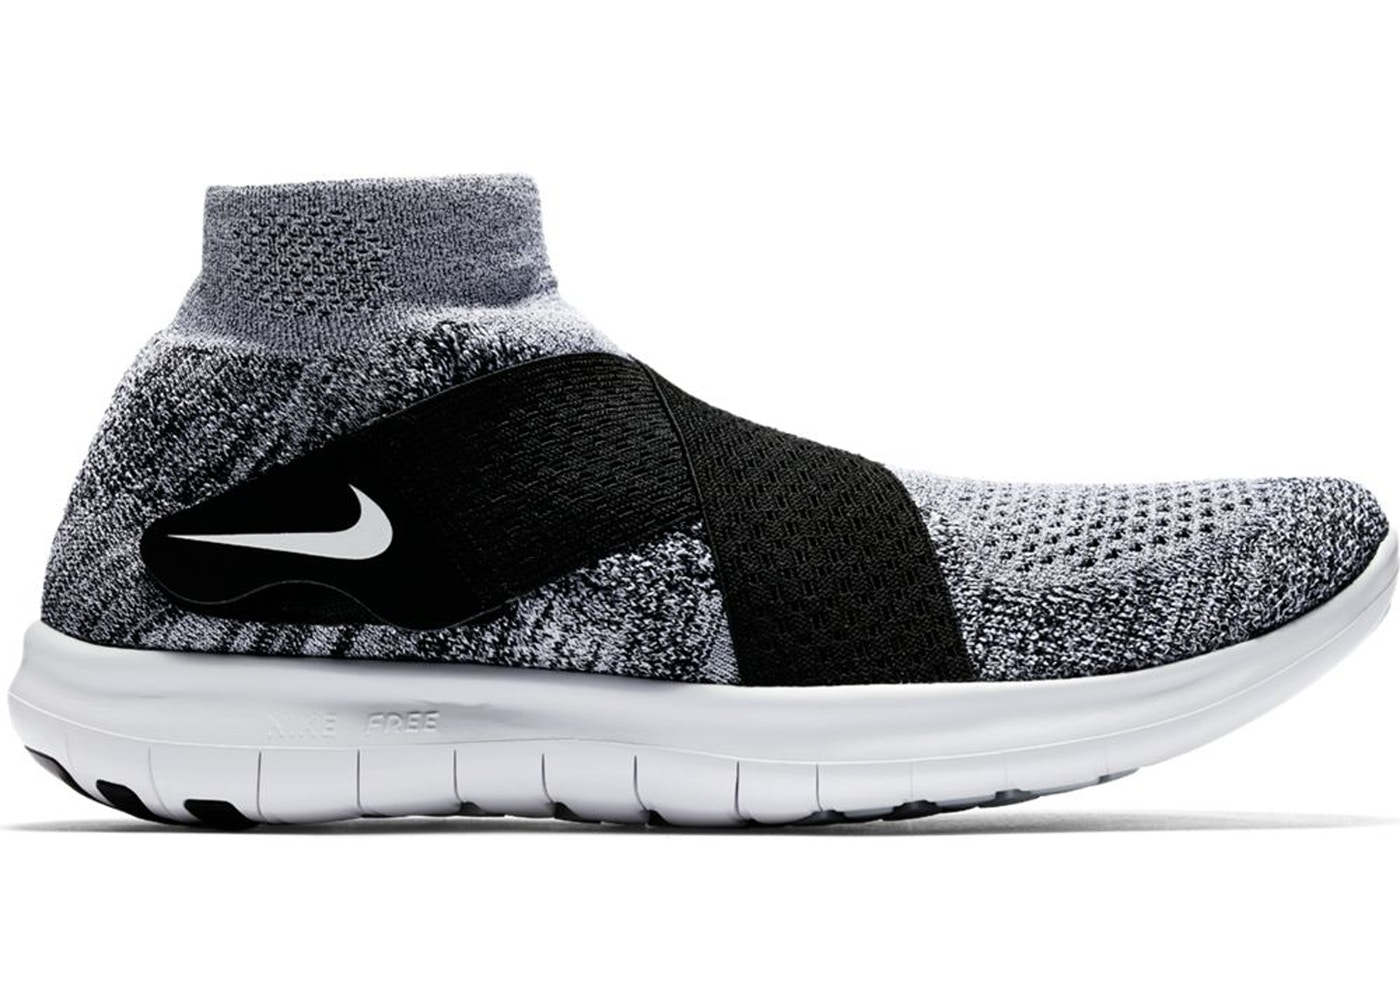 Nike Free RN Motion Flyknit 2017 Black White - 880845-001